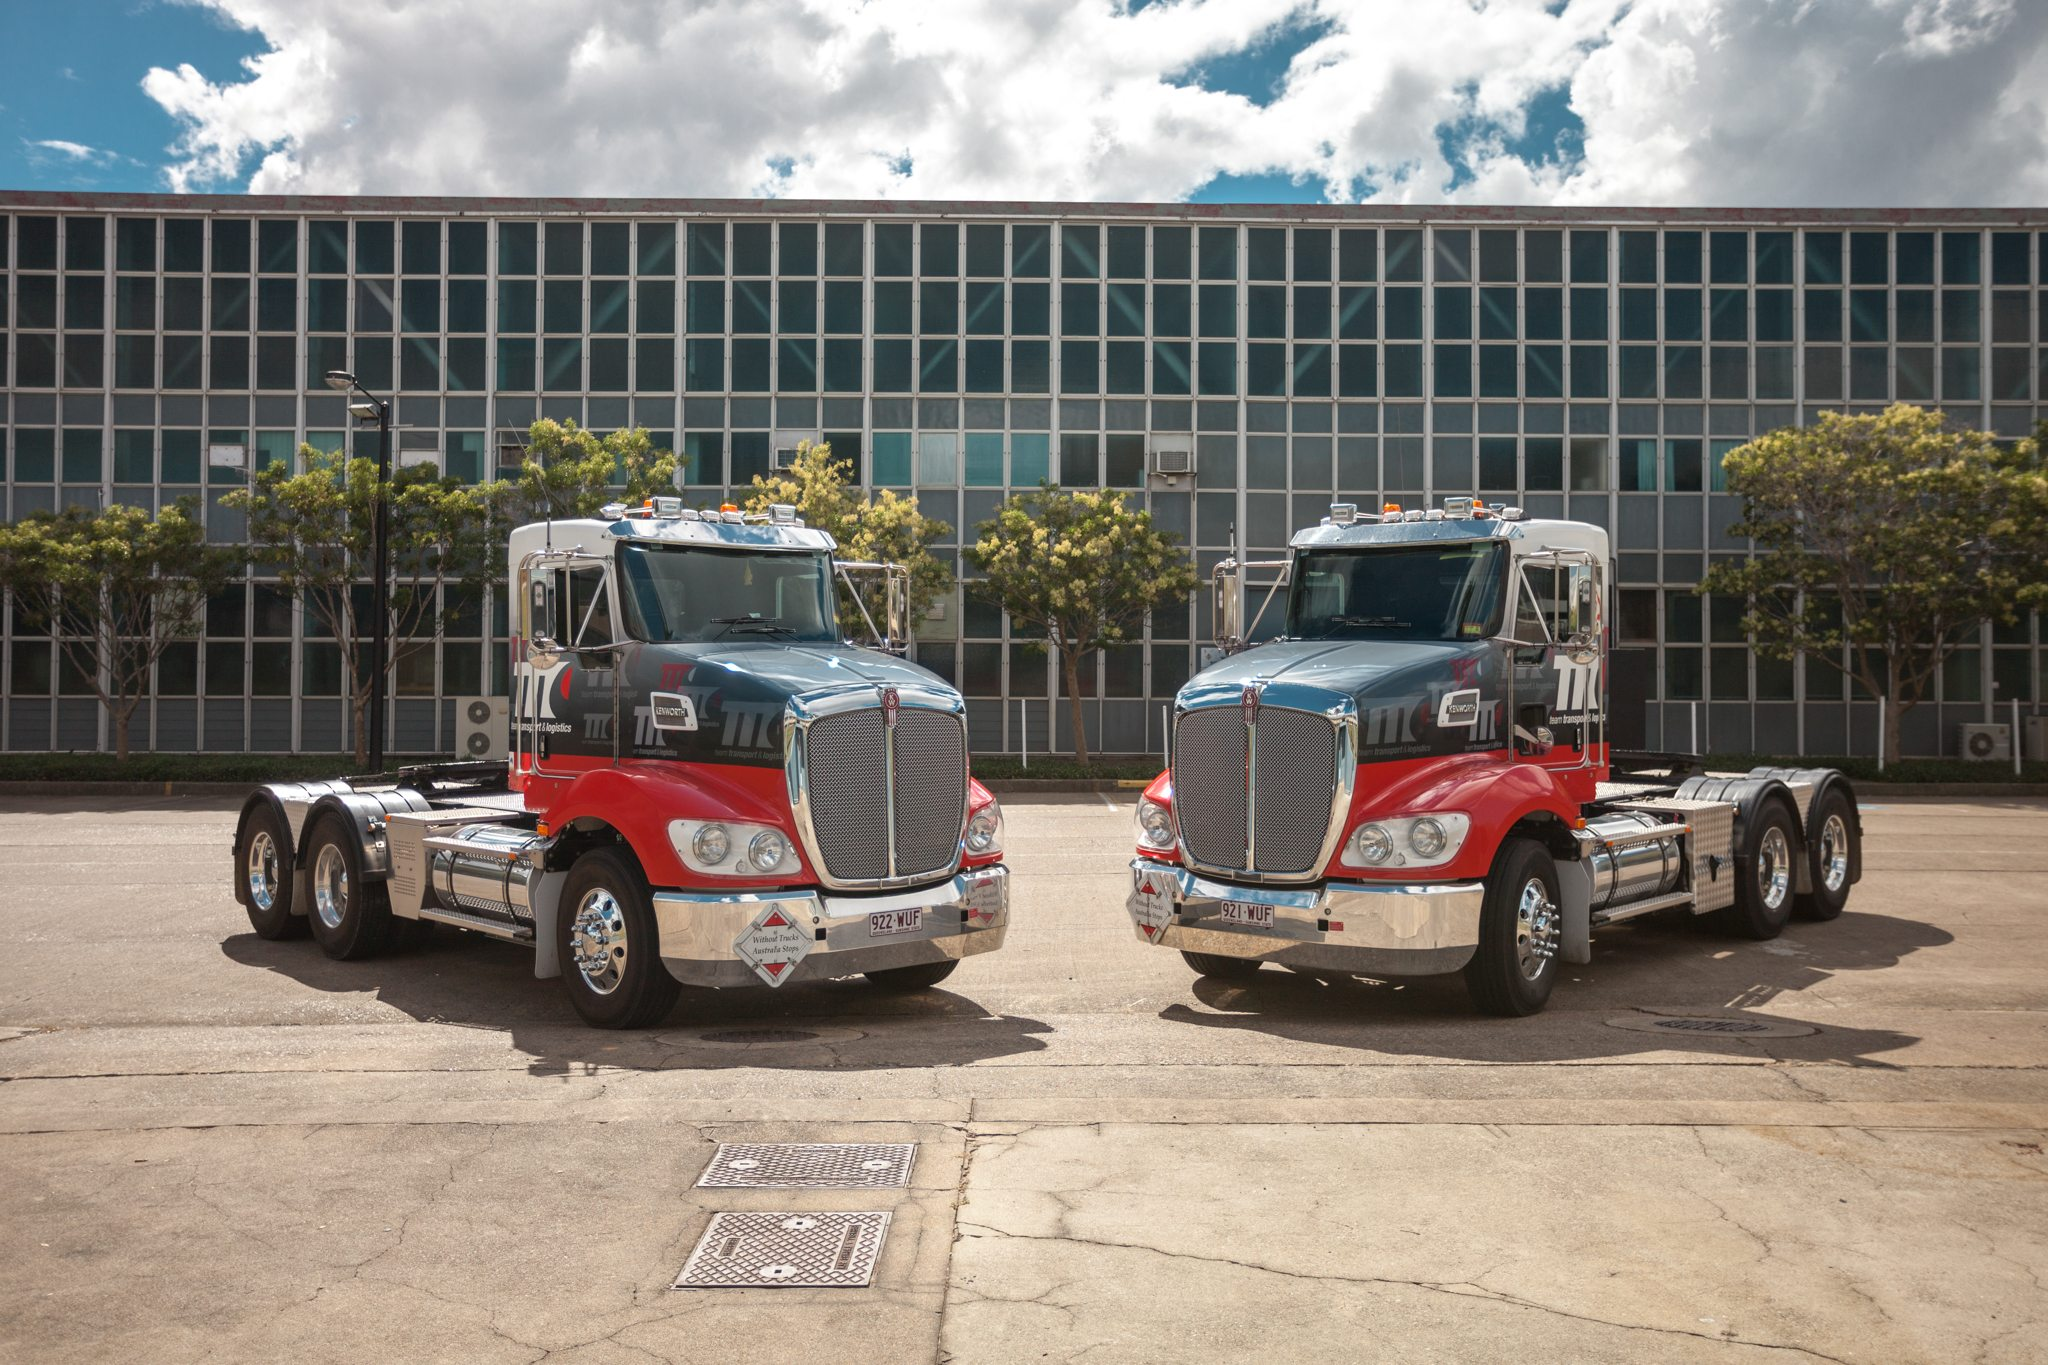 Two Team transport and logistics Identical small trucks parked